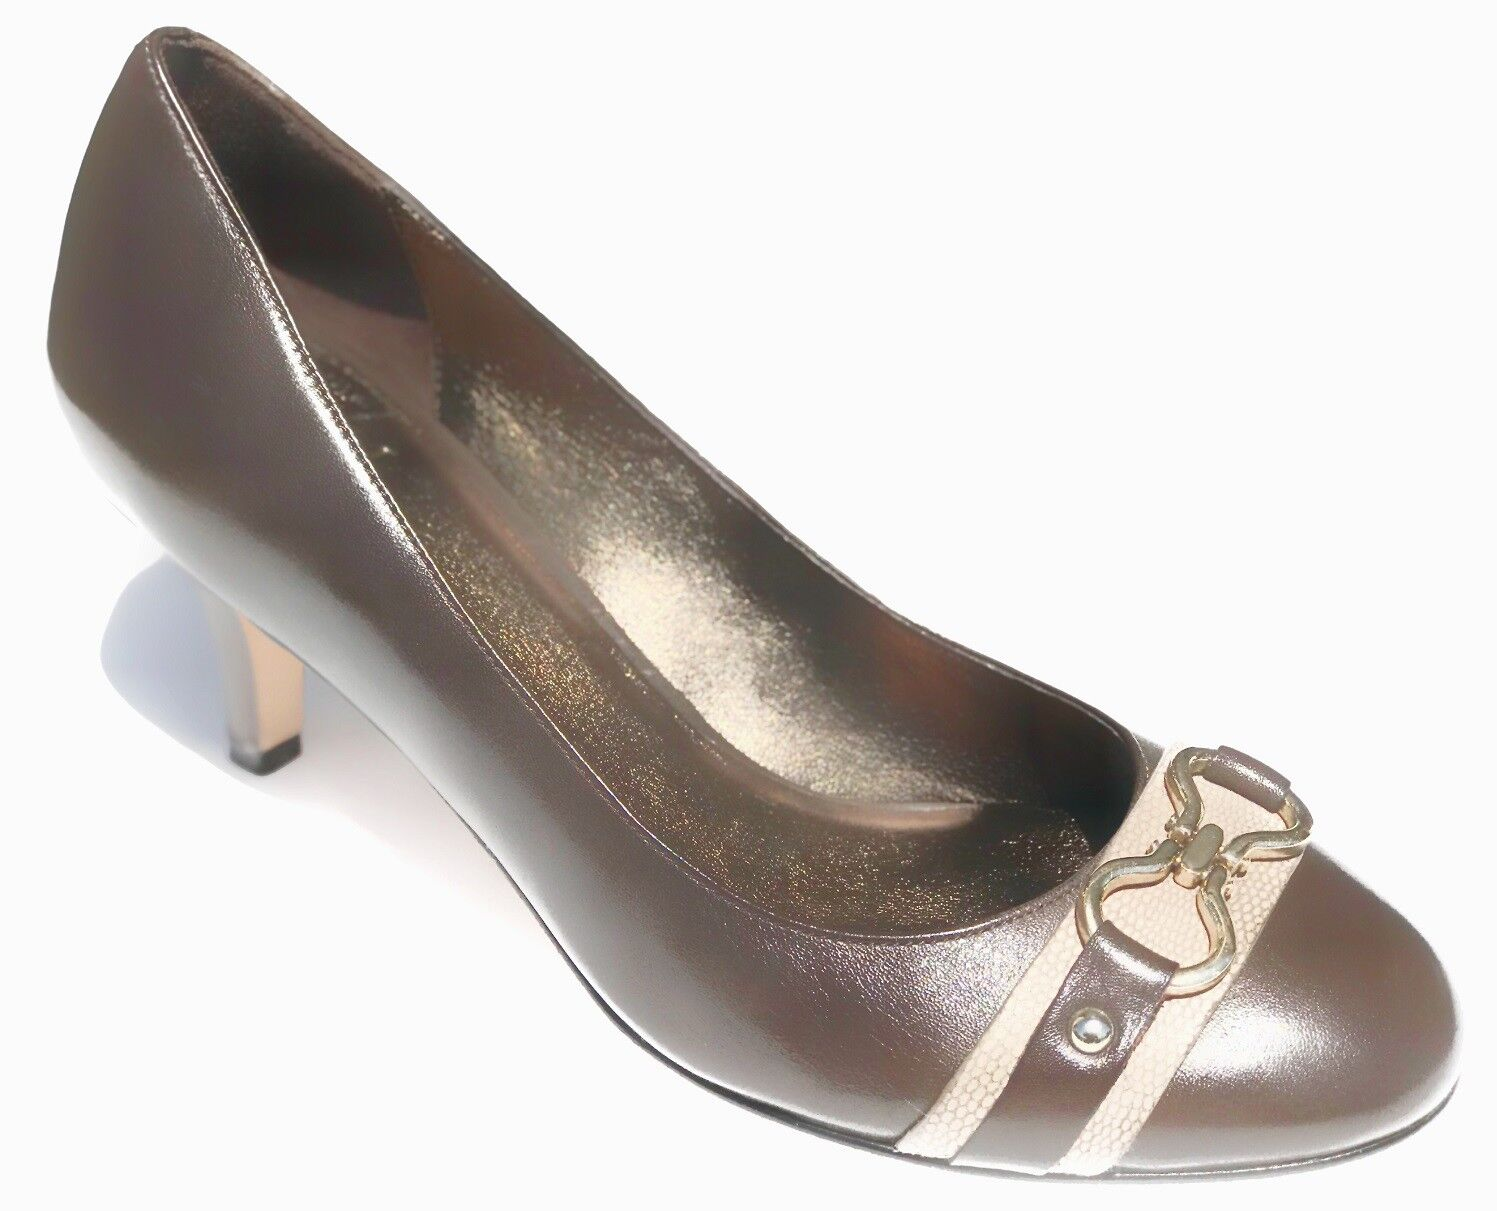 Cole Haan AIR LAINEY Chocolate Leather Pump Heels shoes Womens 9.5 NEW IN BOX